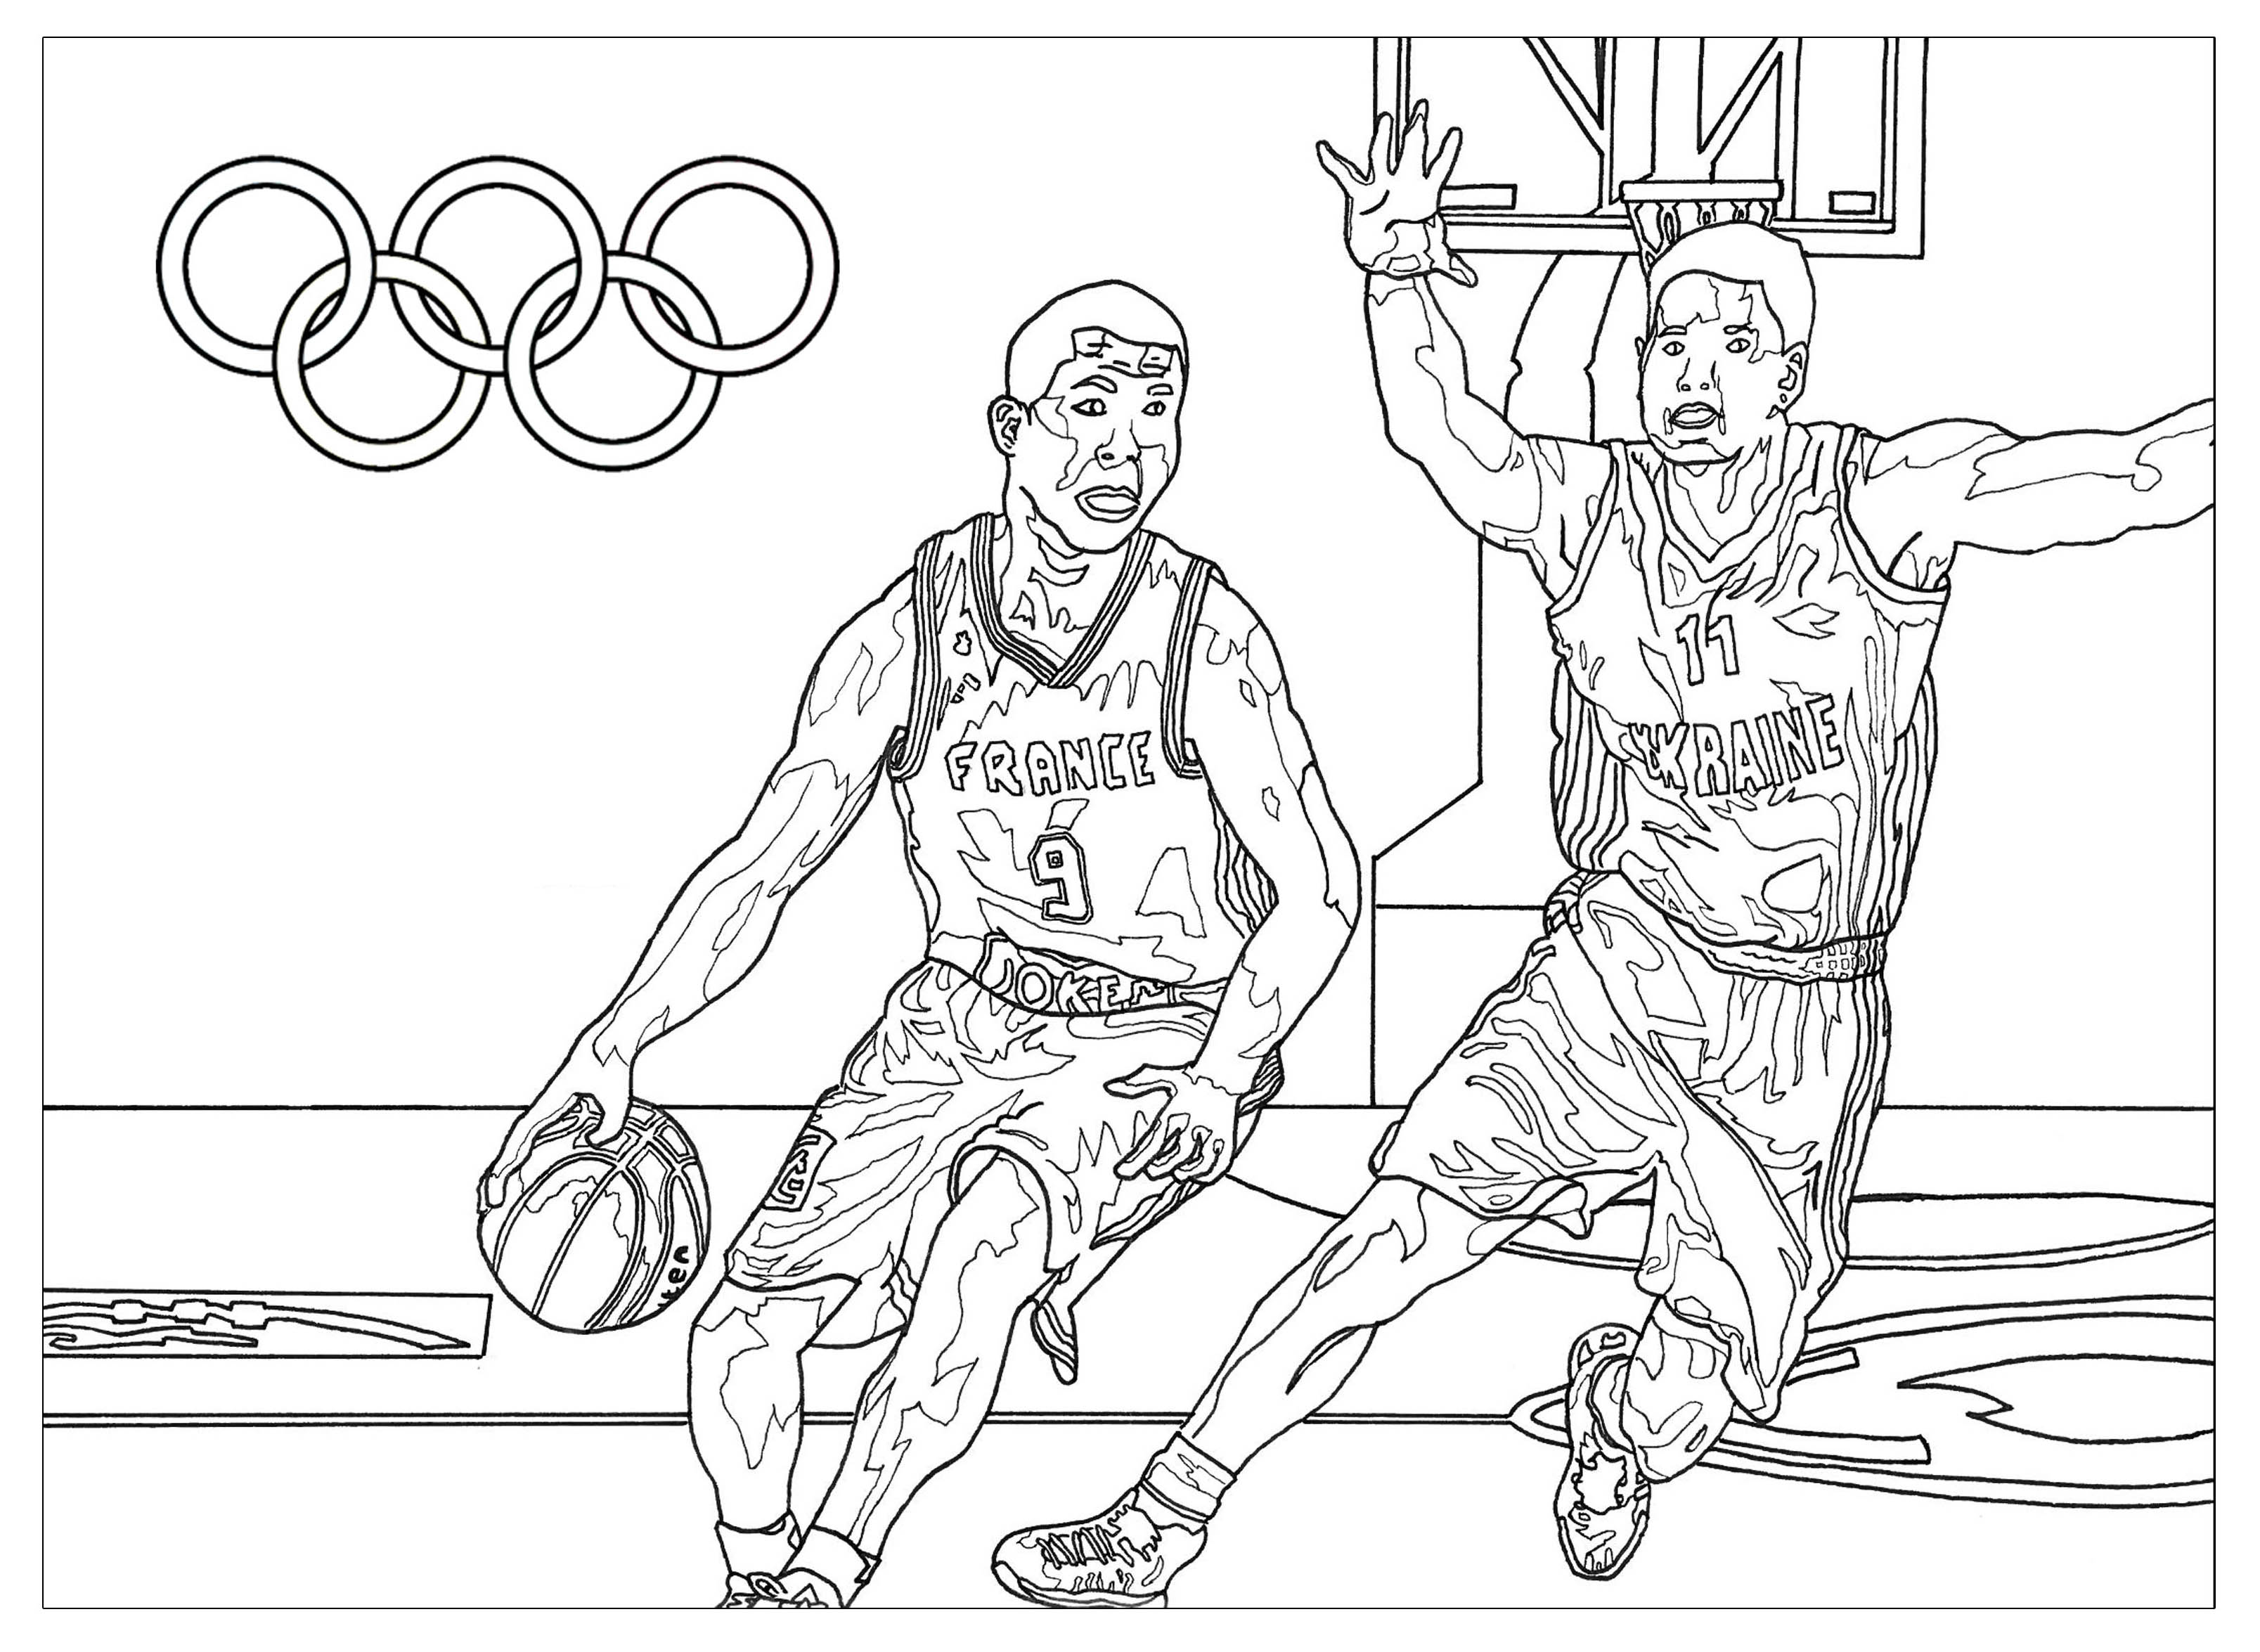 Jeux Olympiques : Le basketball